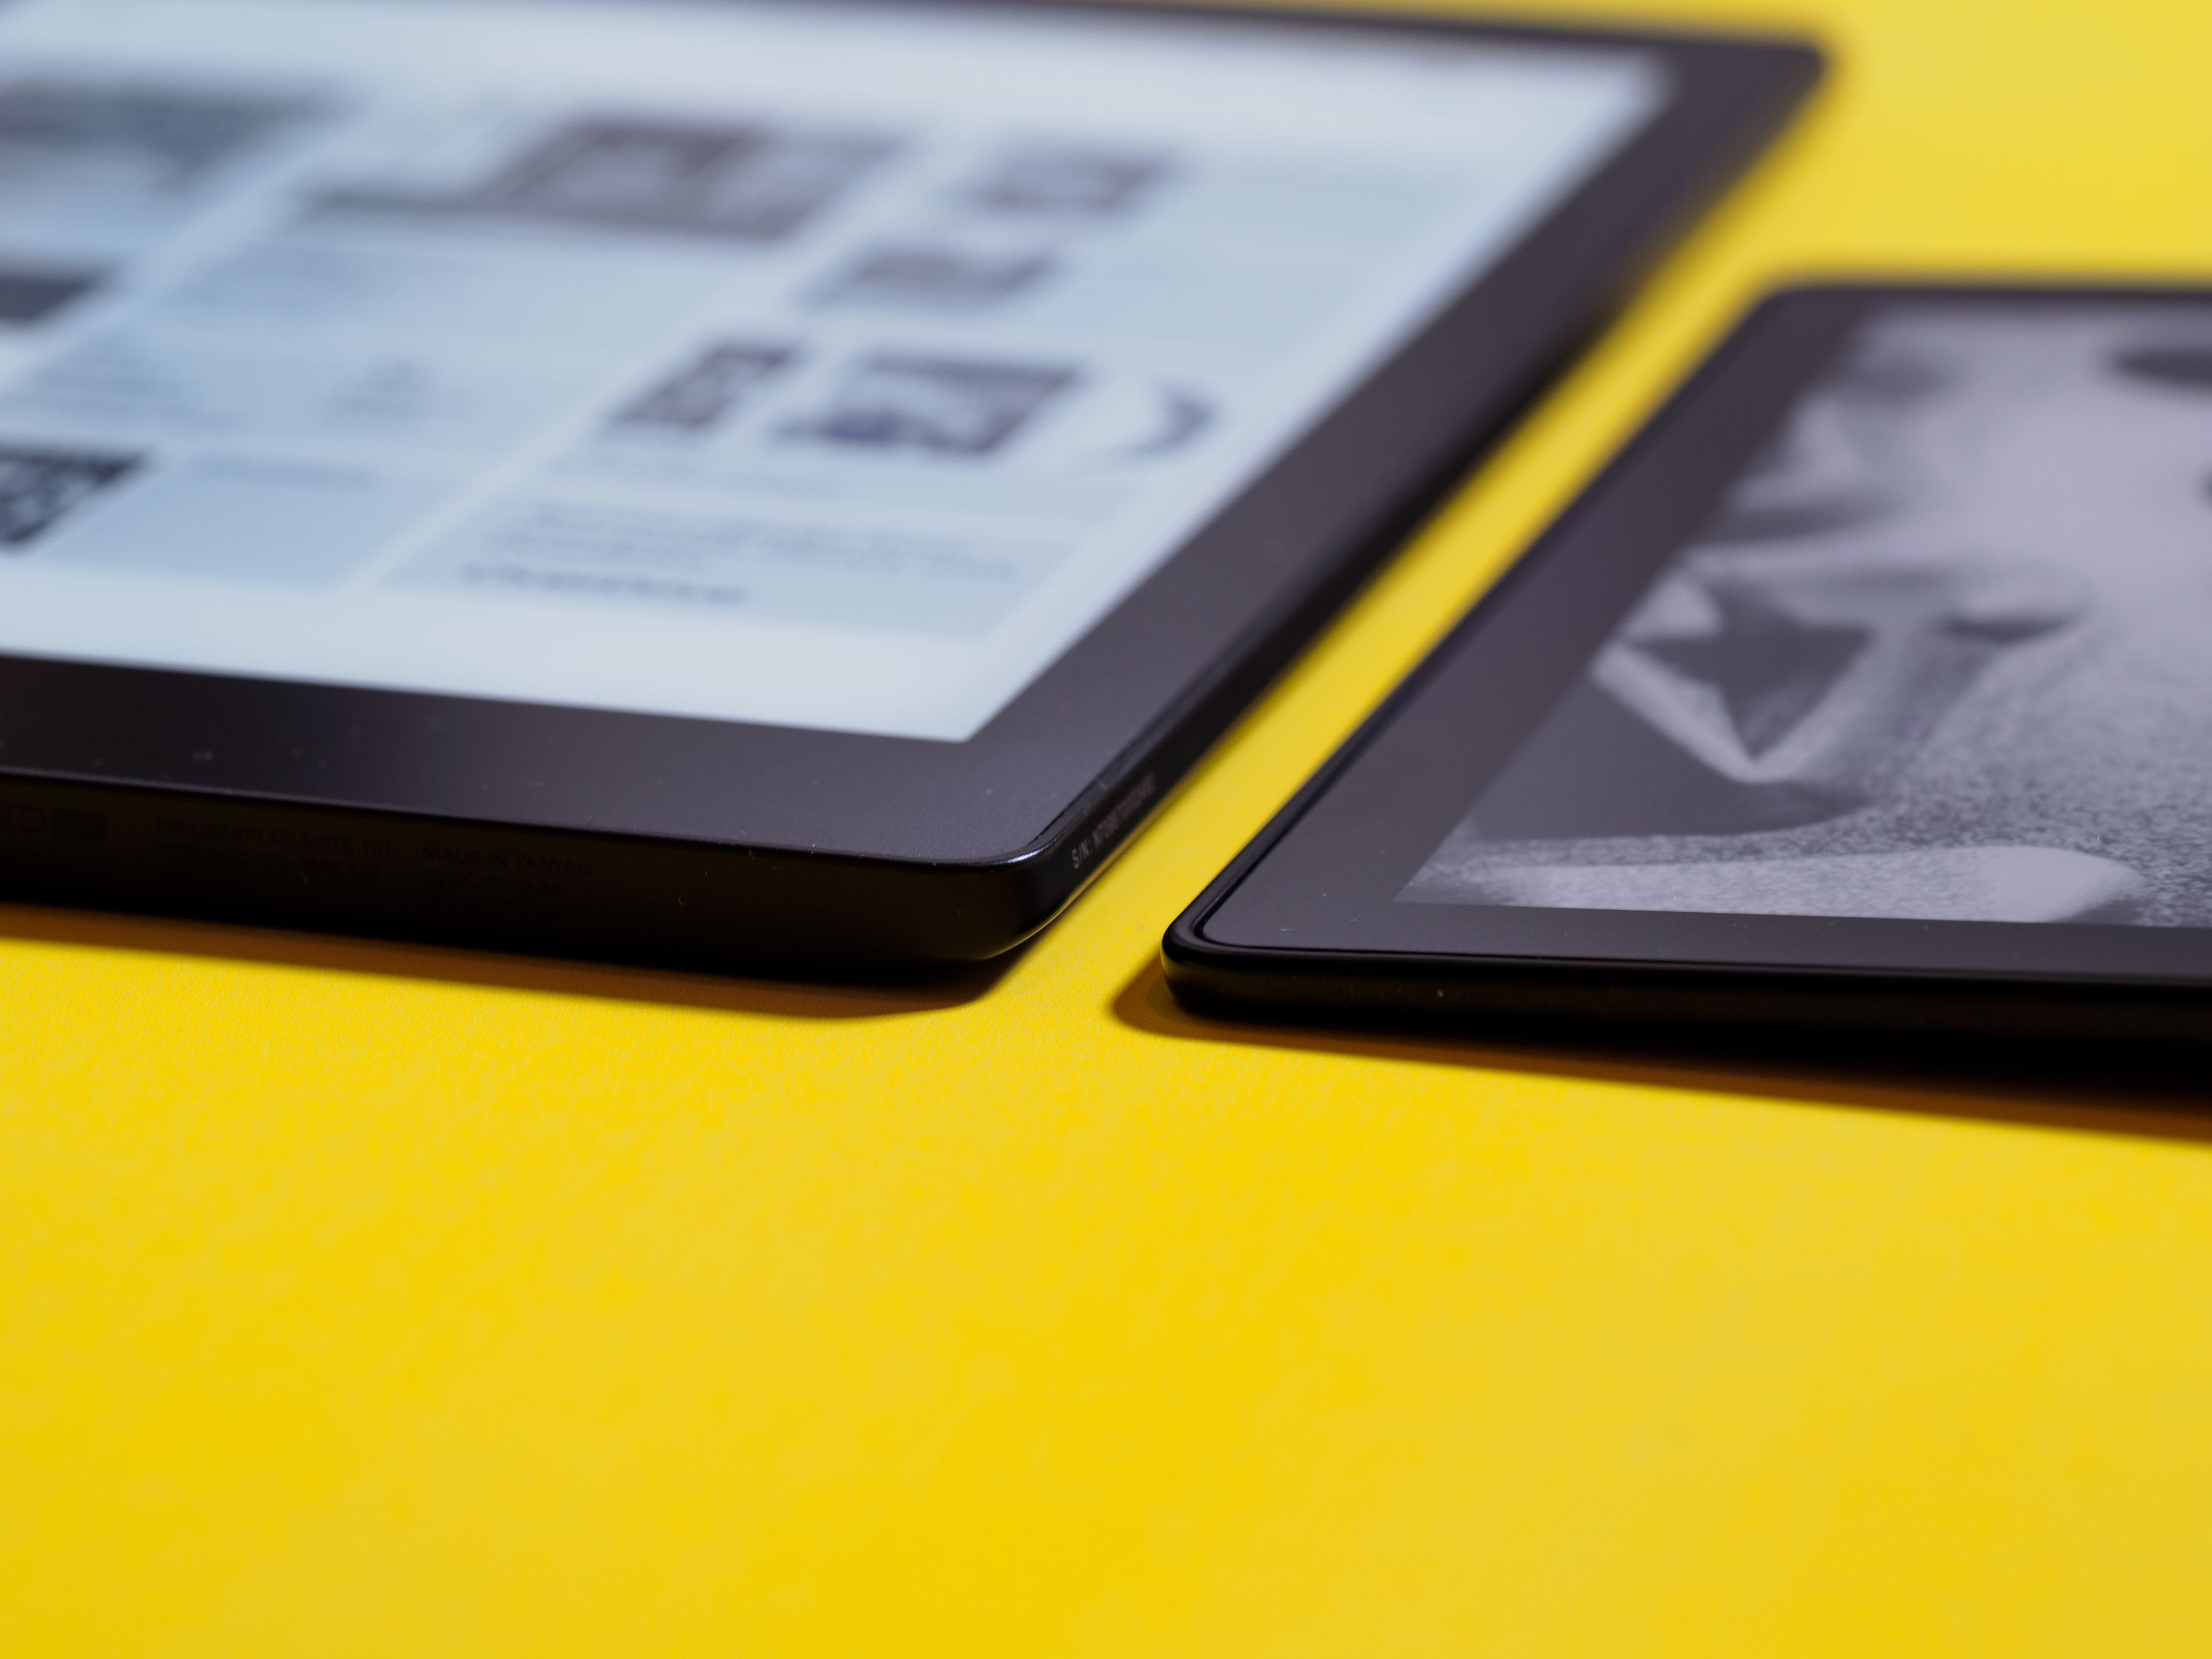 The Kindle Oasis (right) is not only significantly smaller in shape, it's also thinner along its tapered edge. The button side is about the same thickness as the Aura One (left).